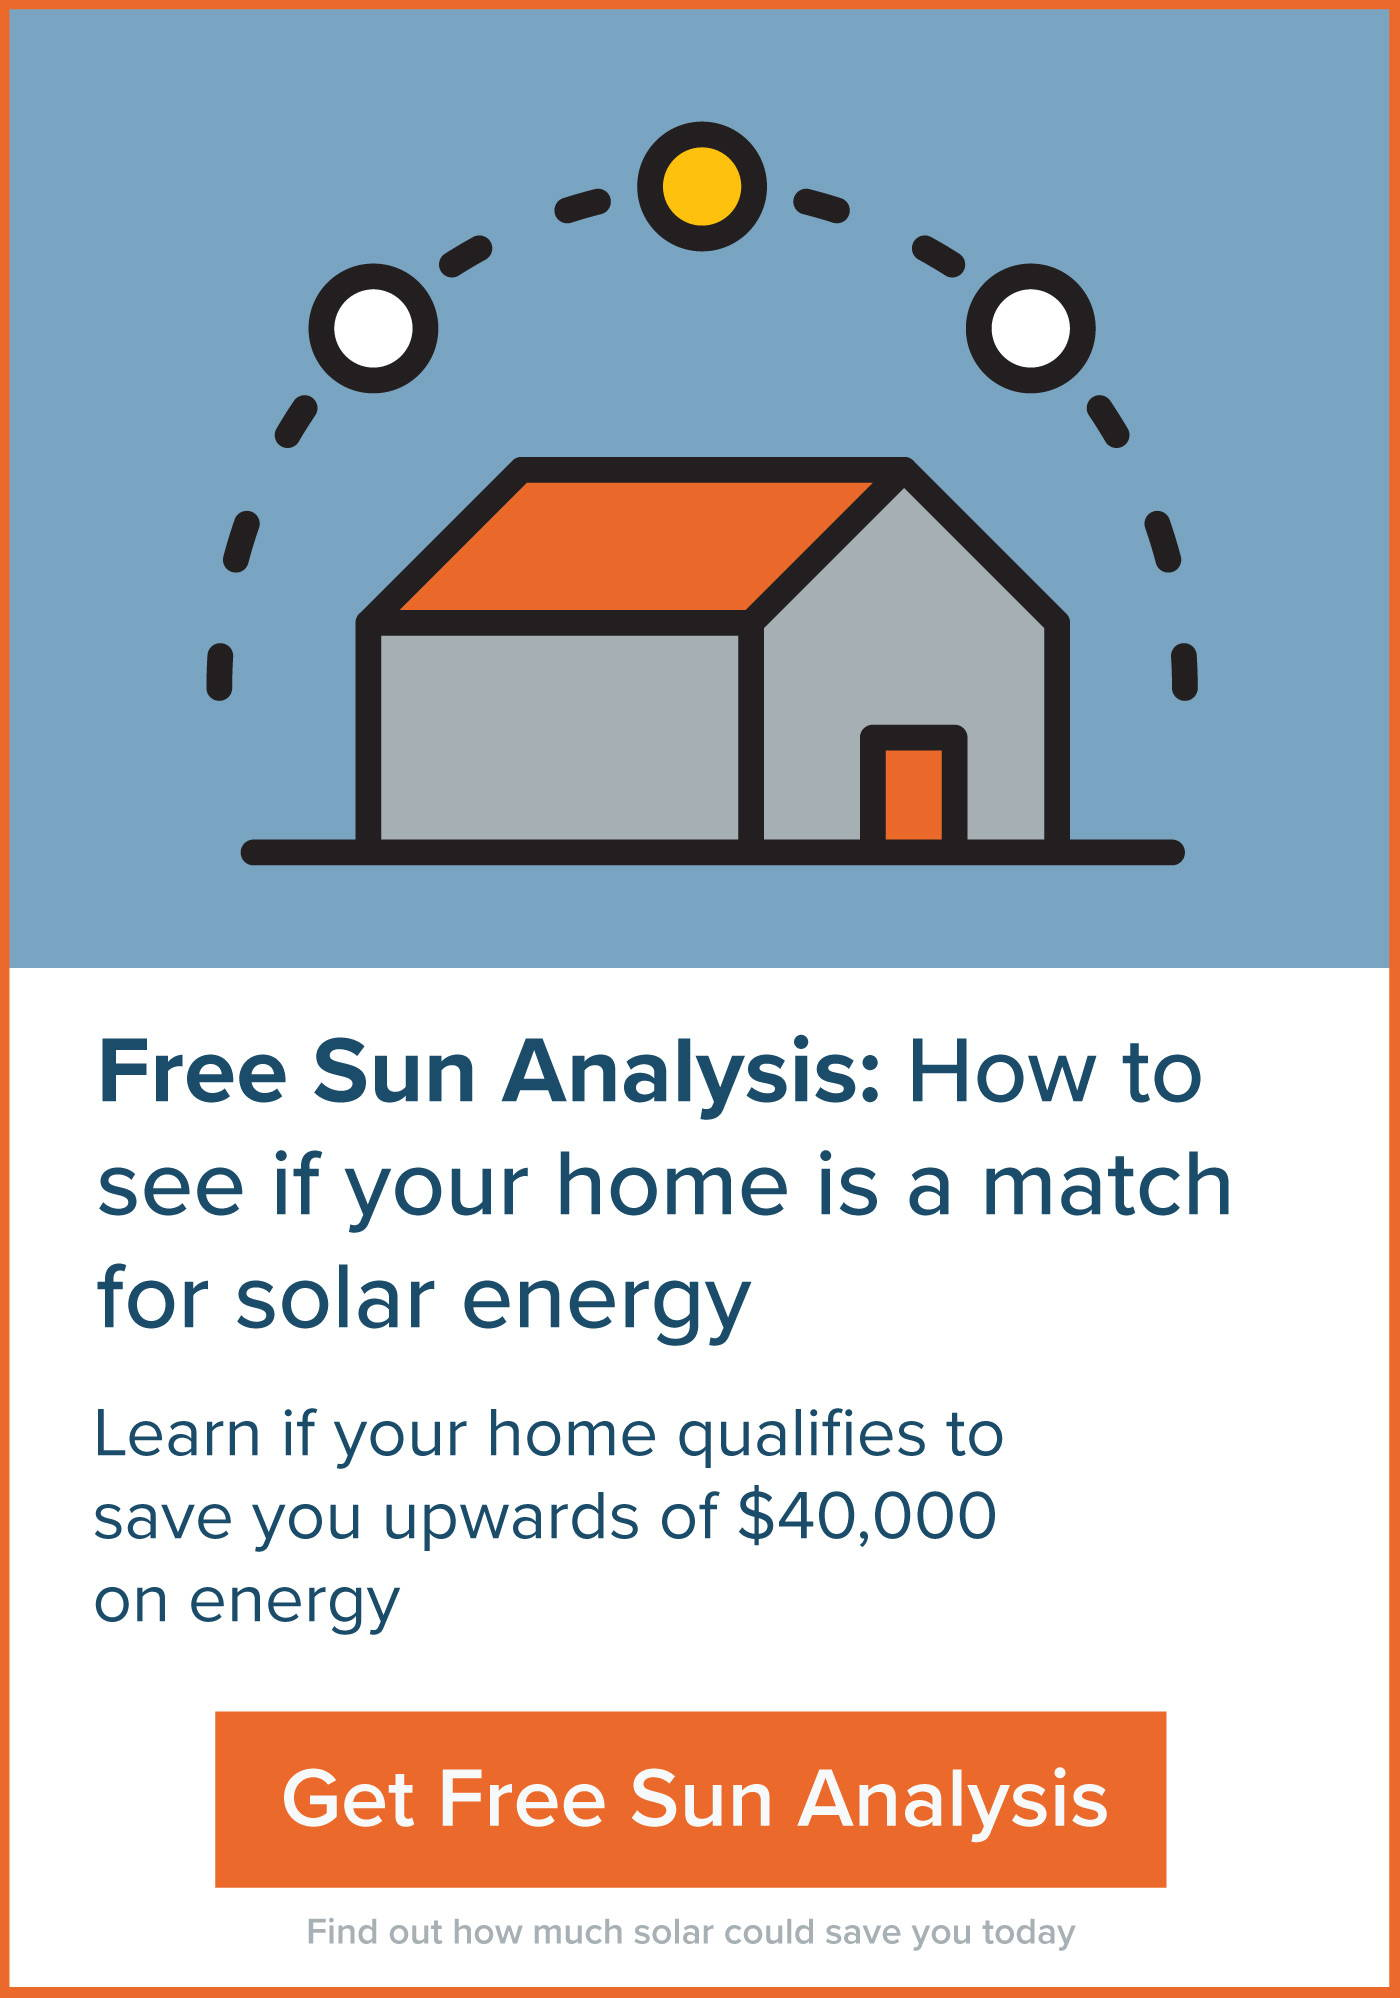 Free sun analysis, click here